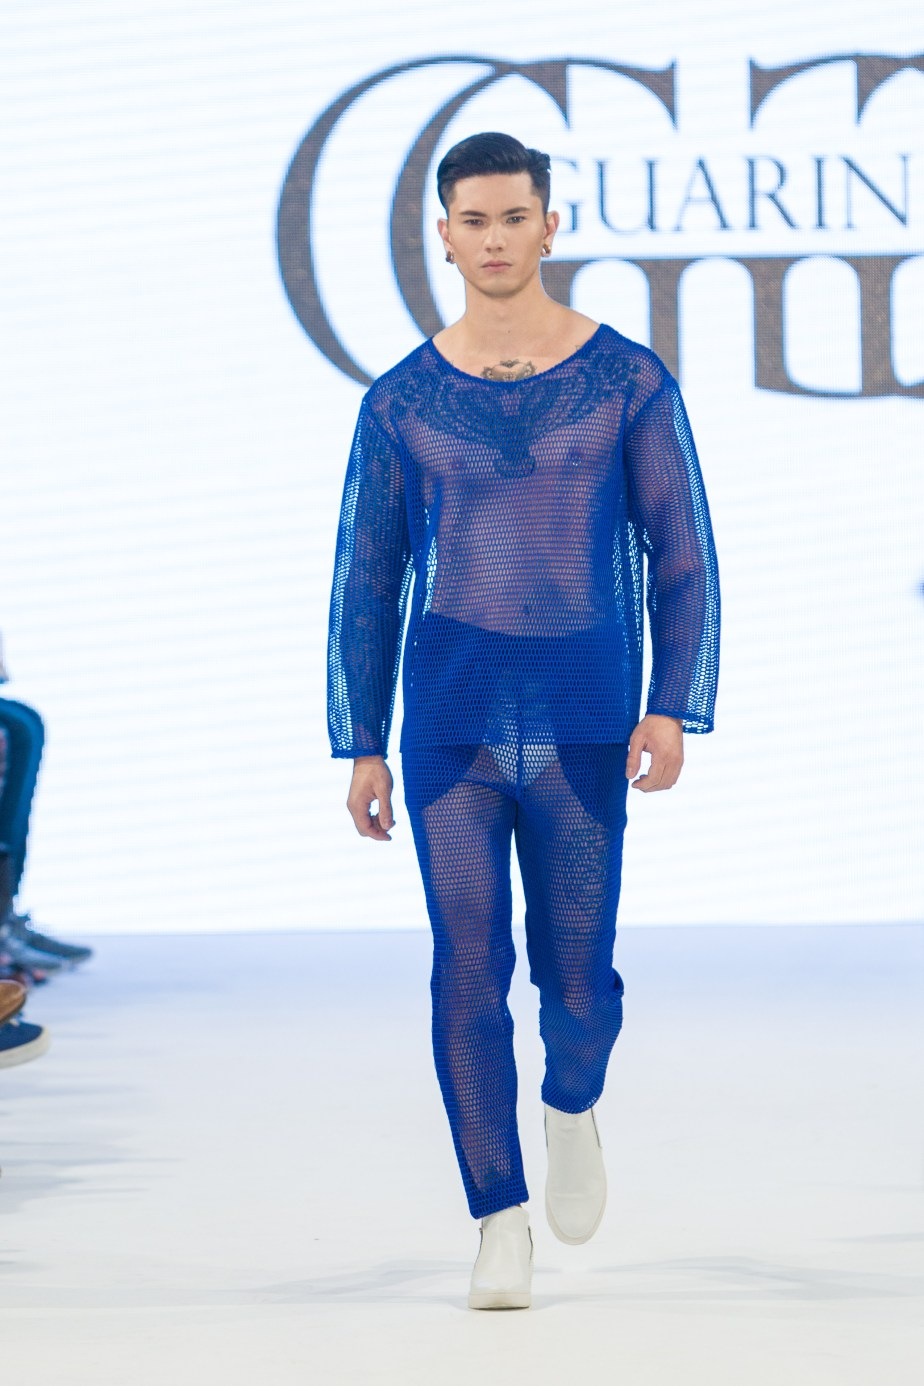 shayne-gray-TOM-aug-20-runway-Guarin-9441